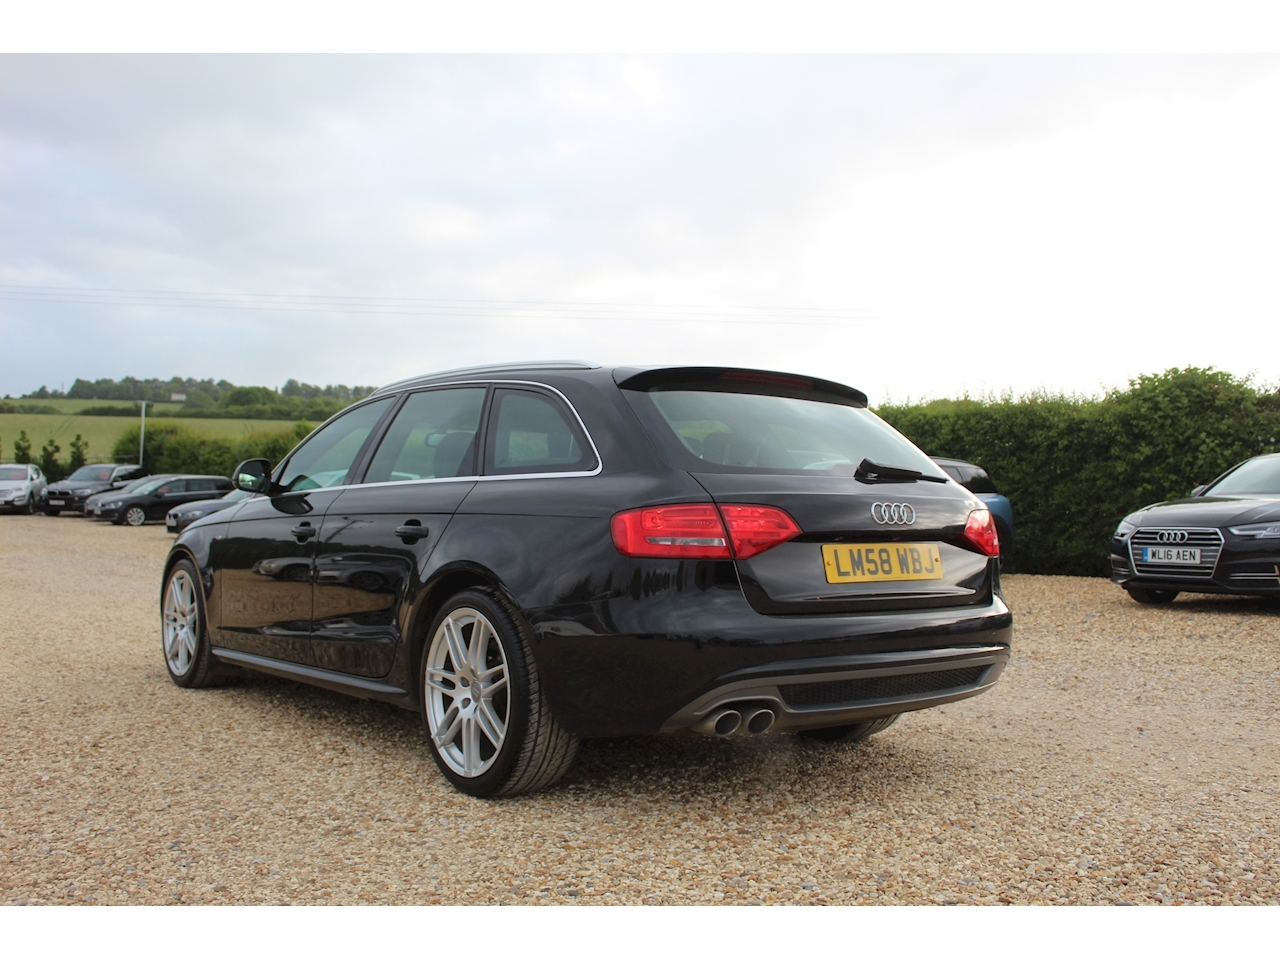 Audi A4 Avant Tdi Dpf S Line Estate 2.0 Manual Diesel